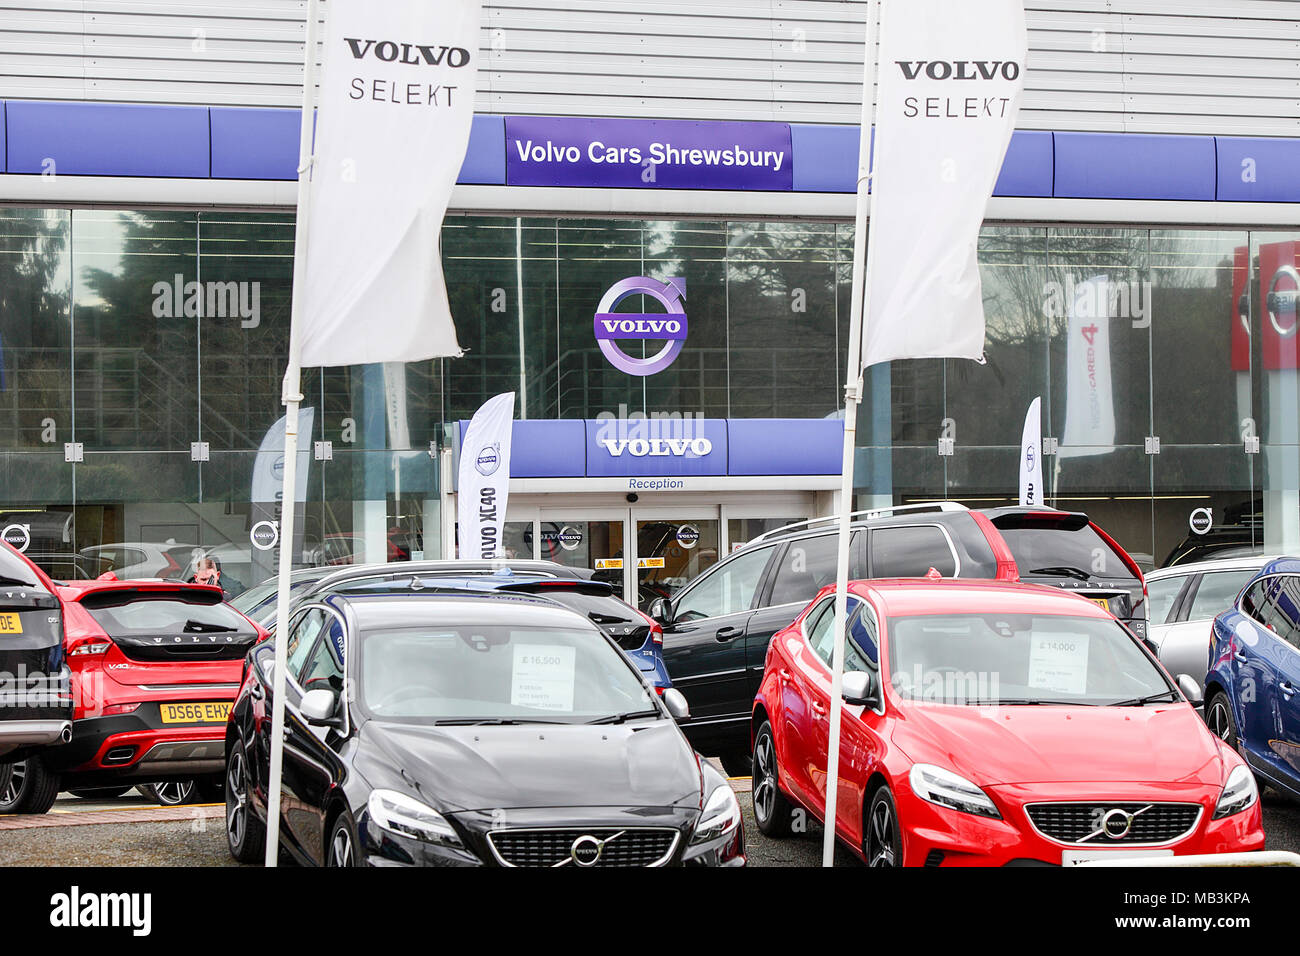 One of (20) images in this short set related to various retail, private and NHS properties in the Shrewsbury area. Volvo Car dealership viewed here. Stock Photo